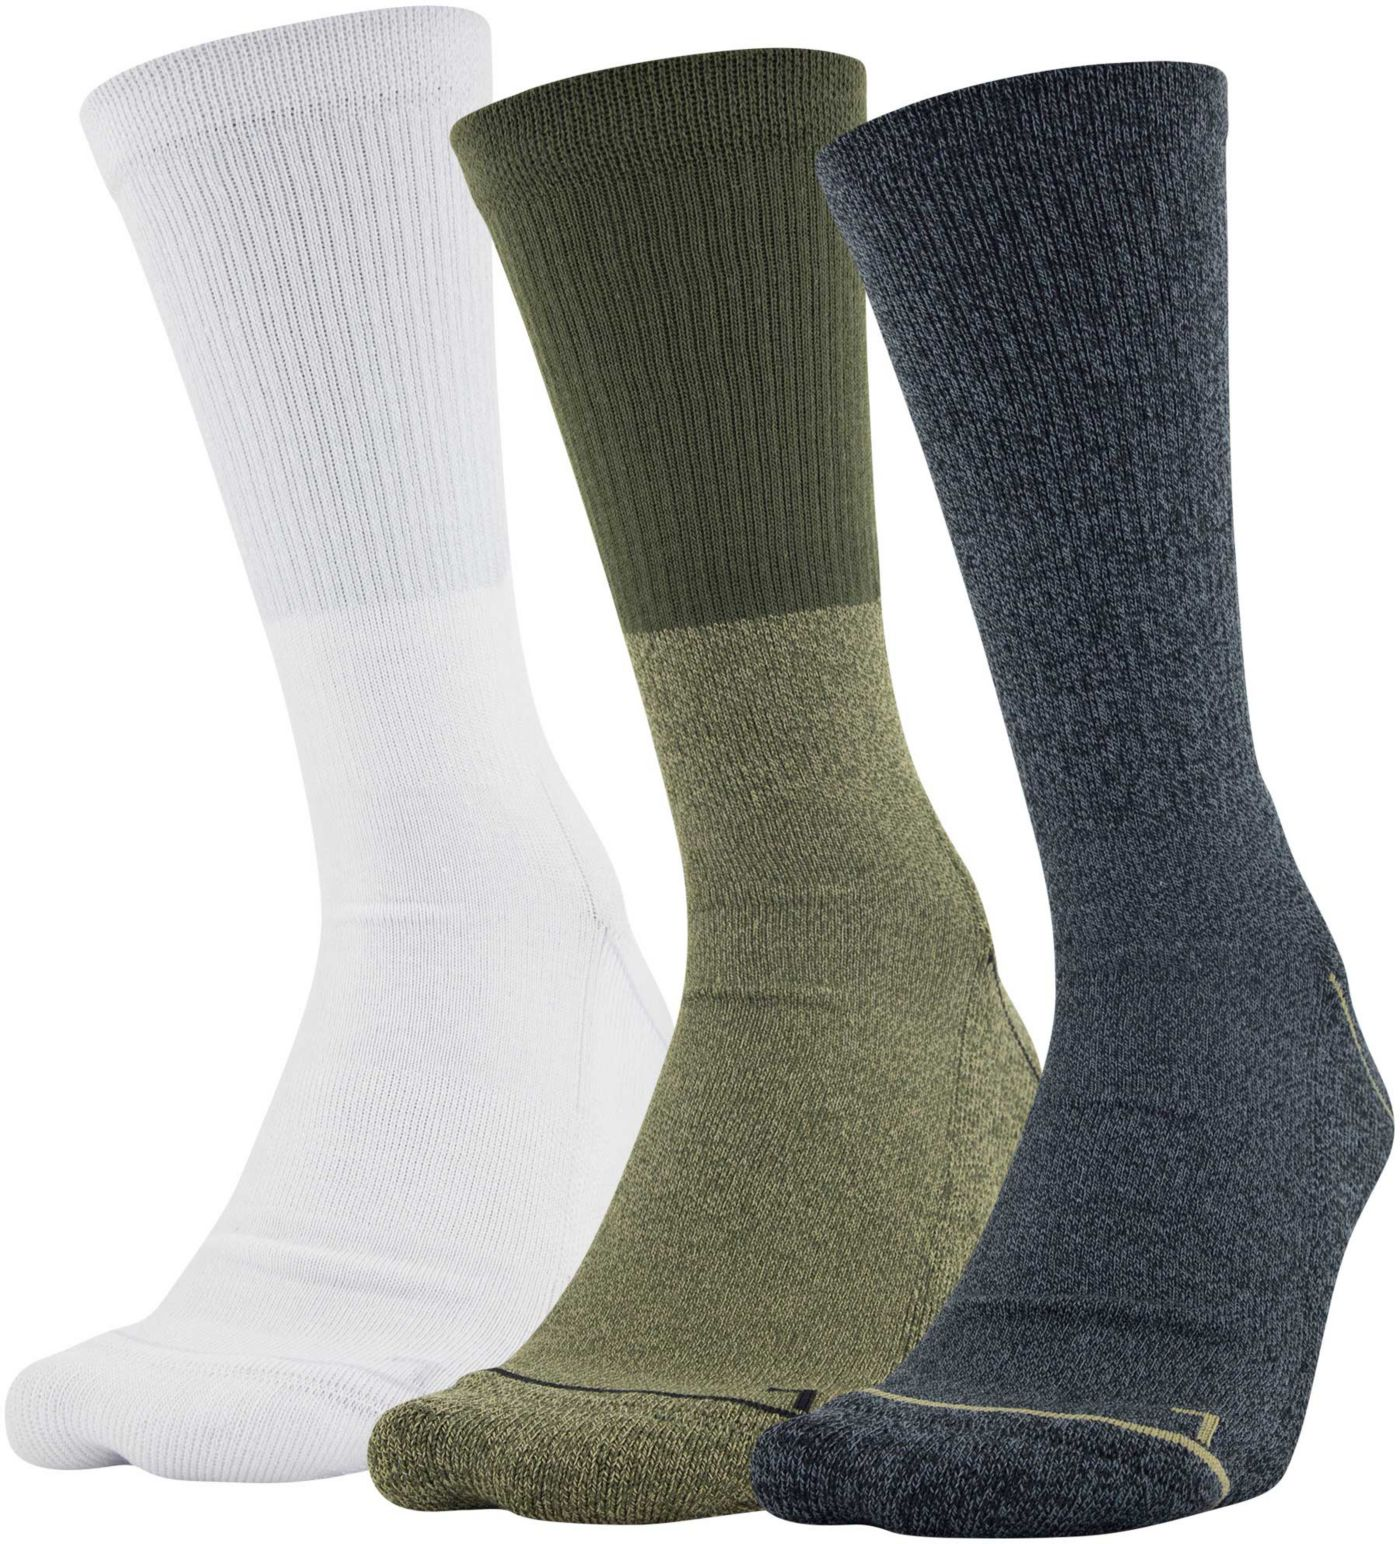 Under Armour Men's Phenom 5.0 Solid Crew Socks